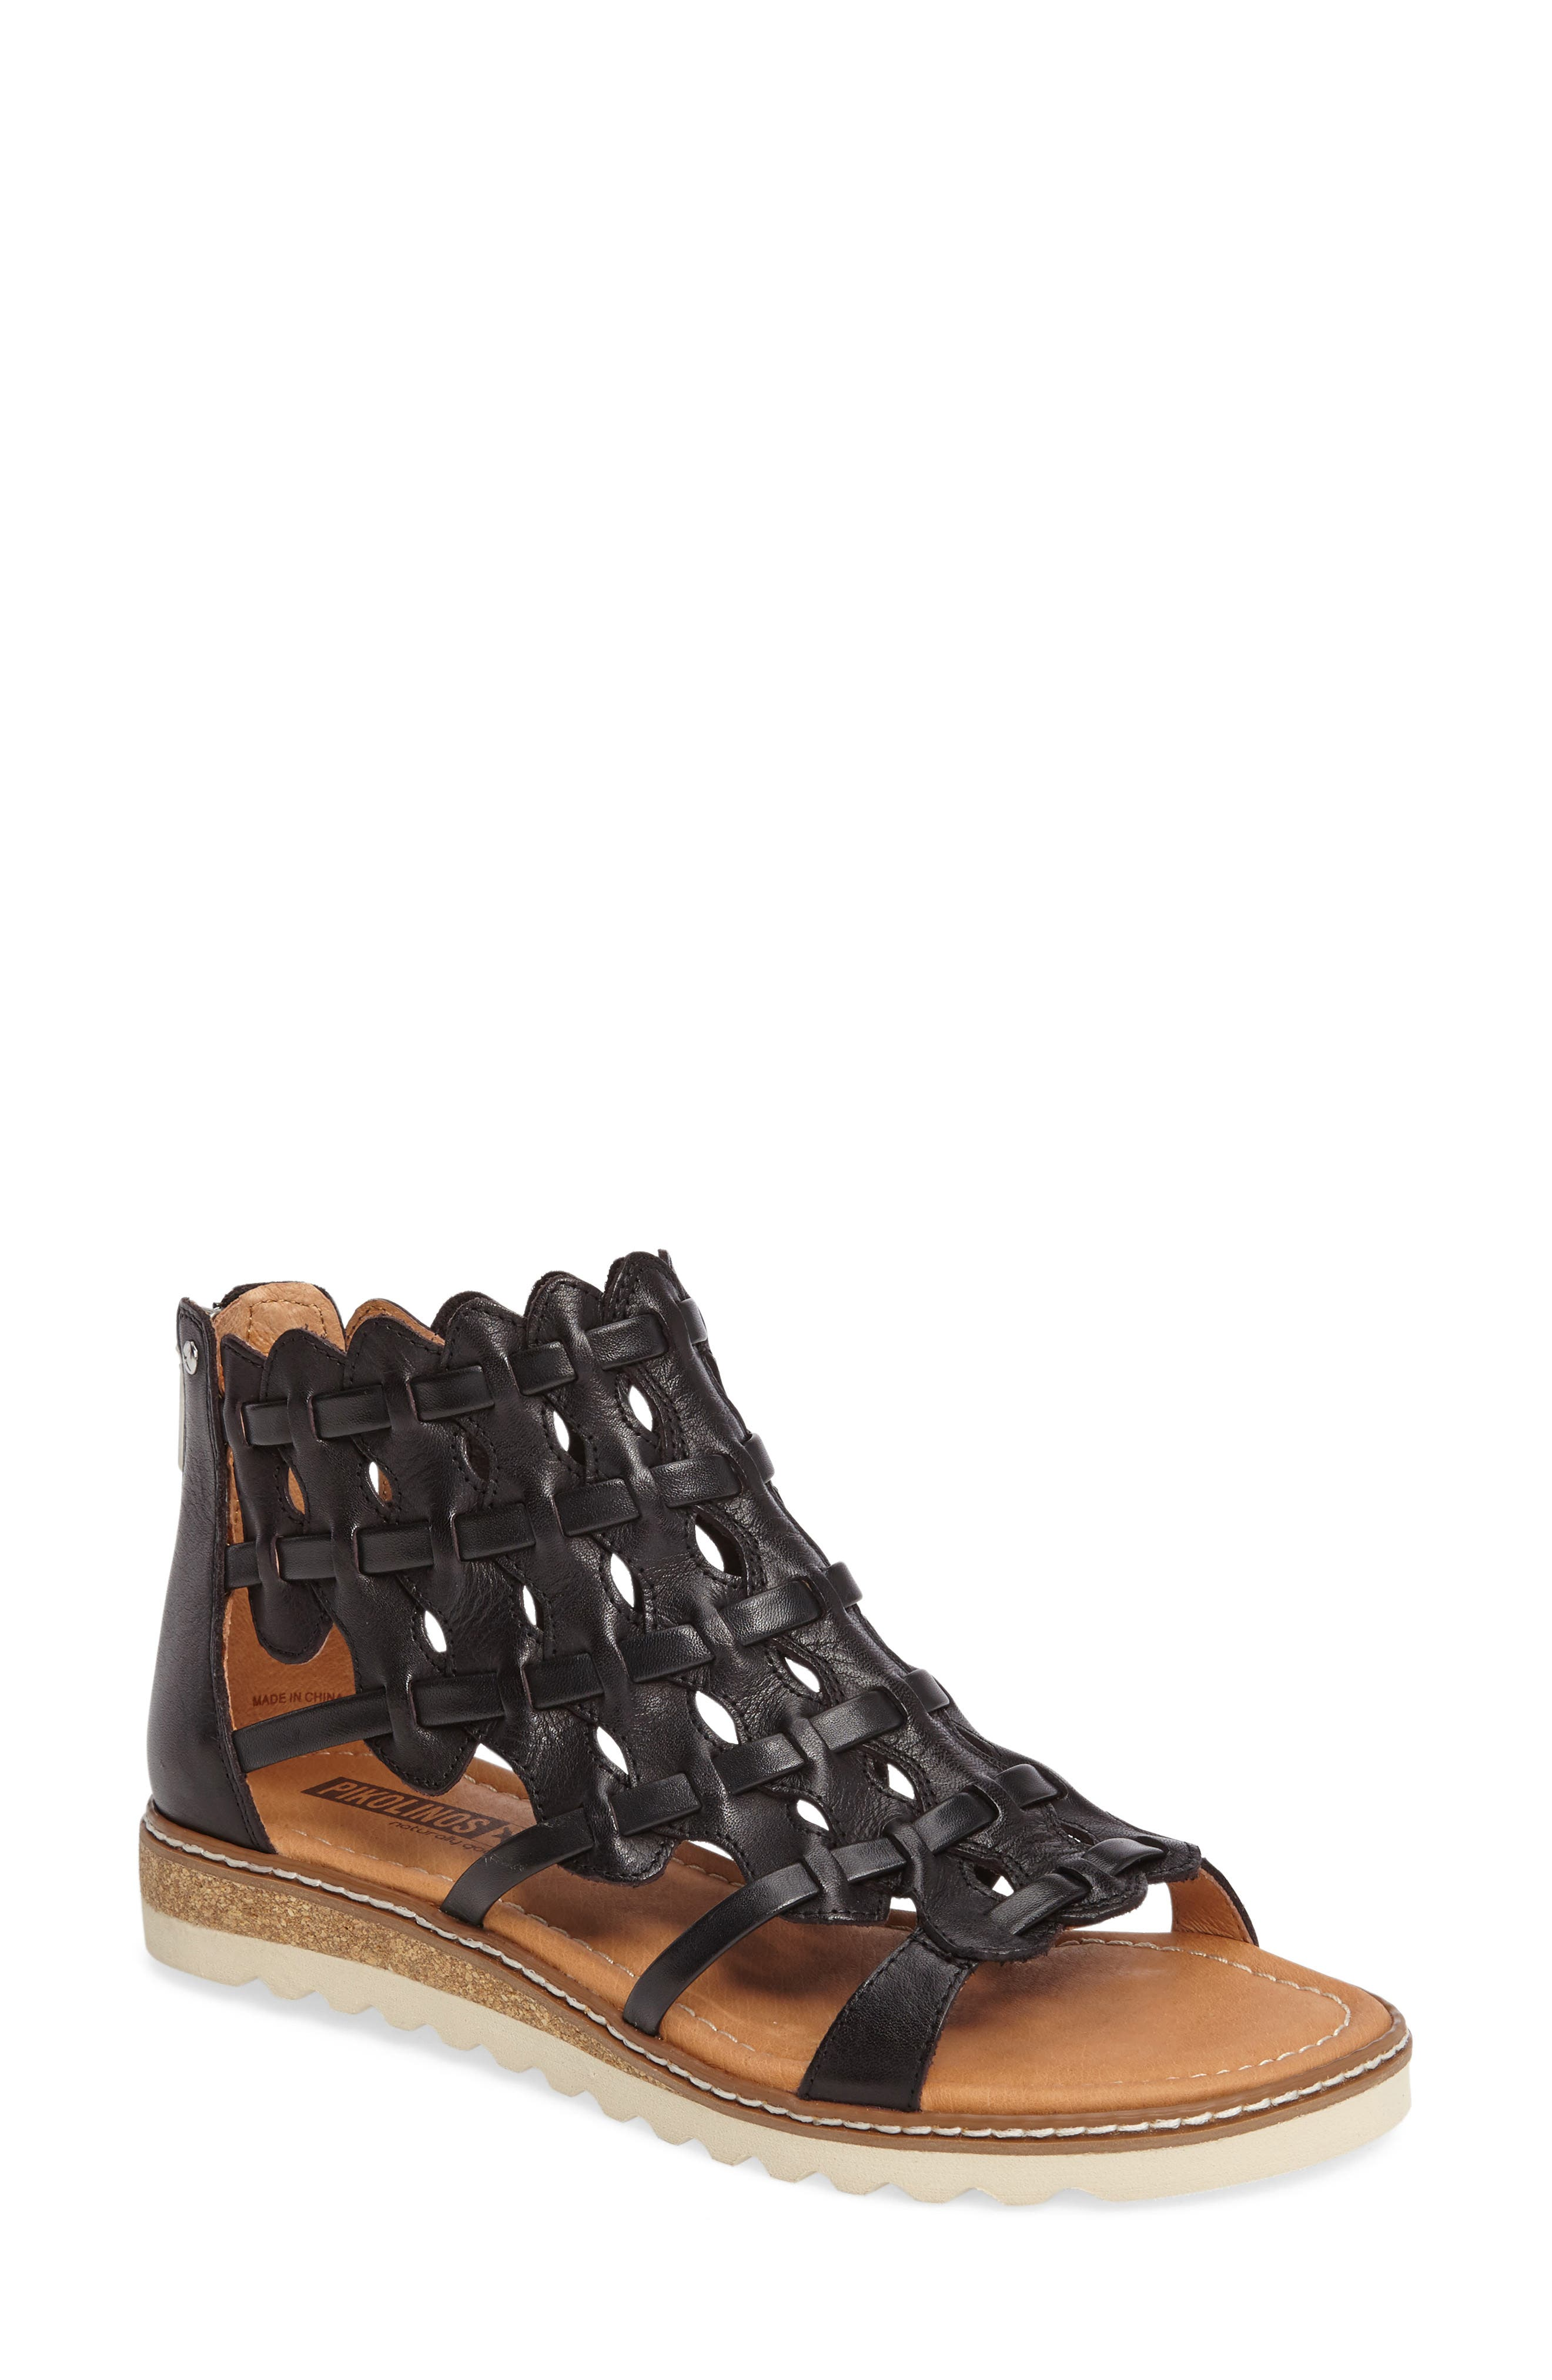 Alcudia Sandal,                         Main,                         color, BLACK LEATHER